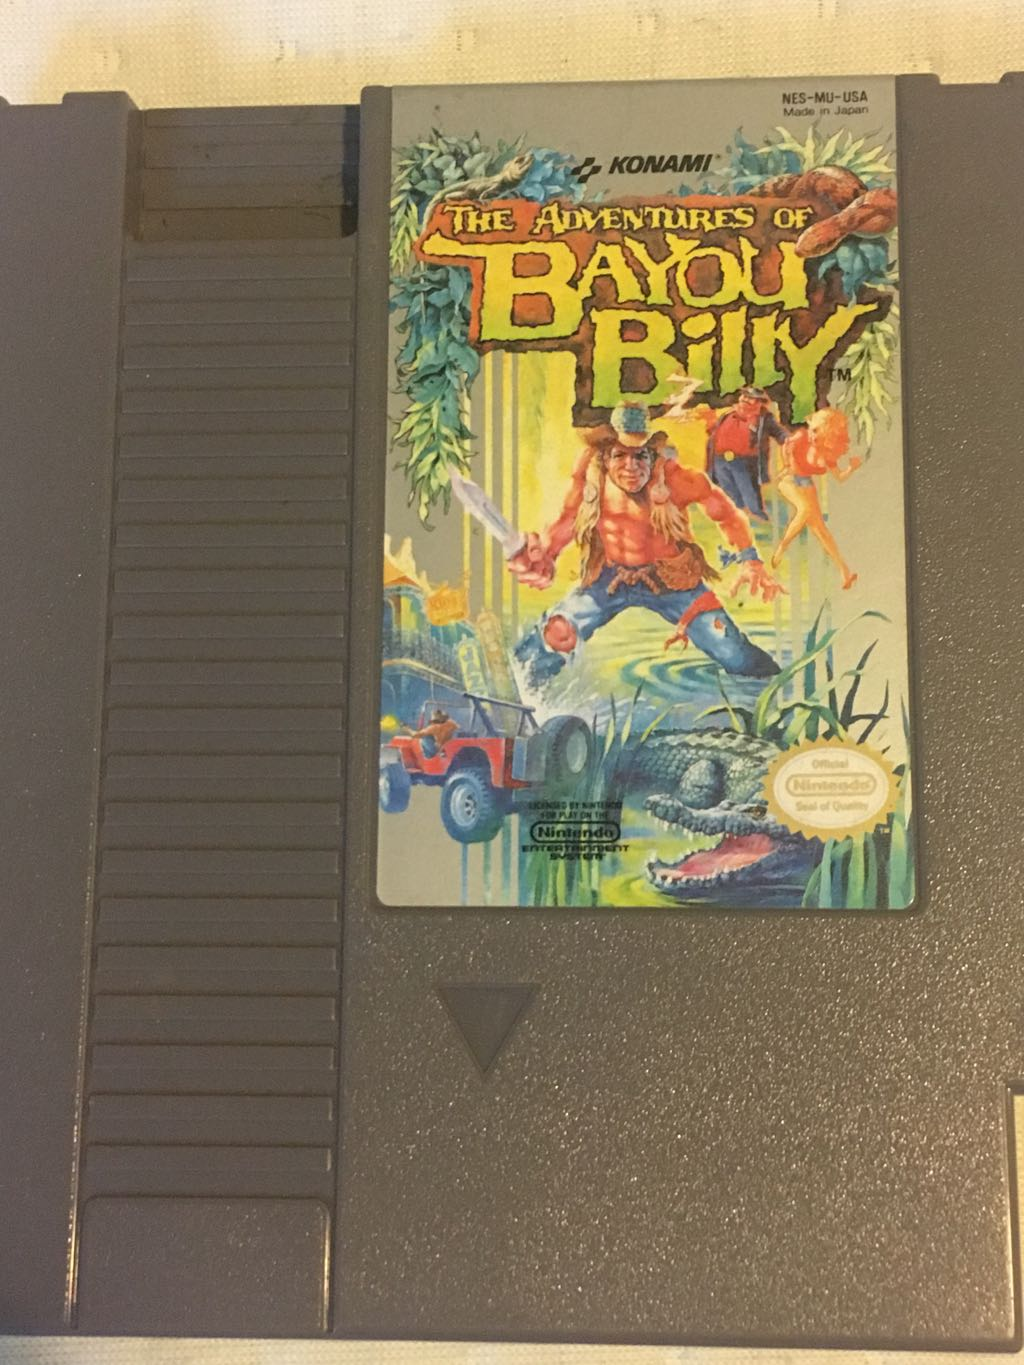 Nes The Adventures Of Bayou Billy